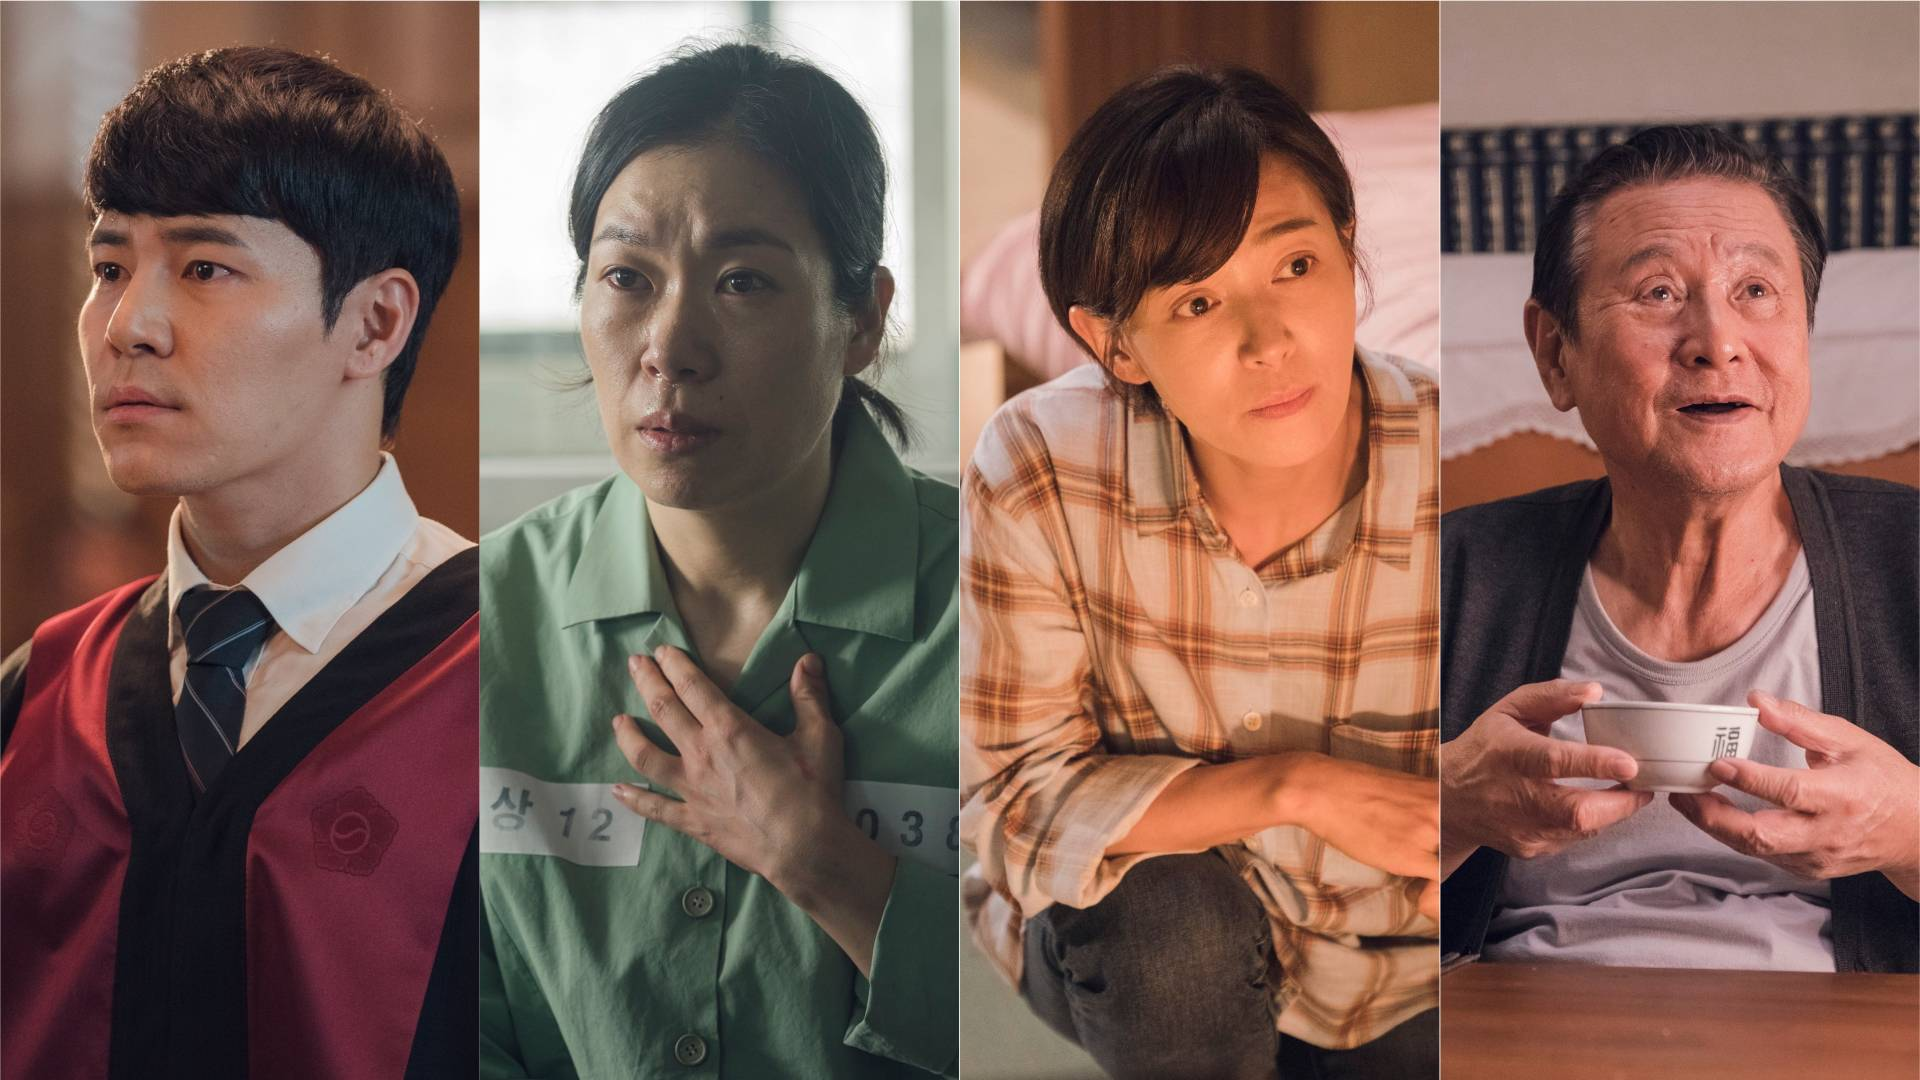 Photos] New Supporting Cast Stills Added for the Upcoming